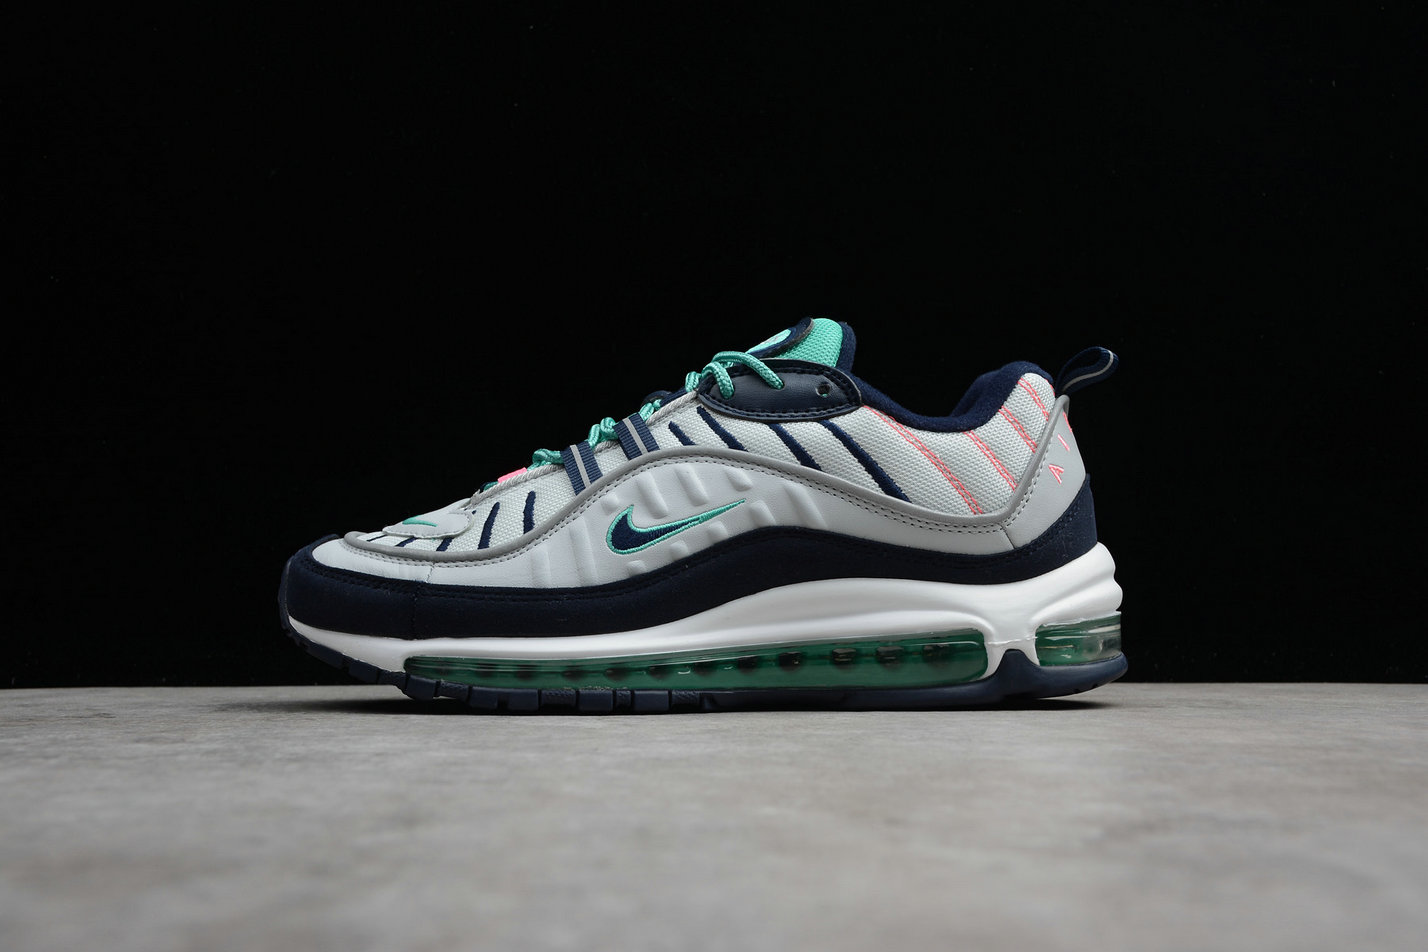 Wholesale Cheap Nike Air Max 98 640744-005 Pure Platinum Obsidian Platine Pur Obsidienne